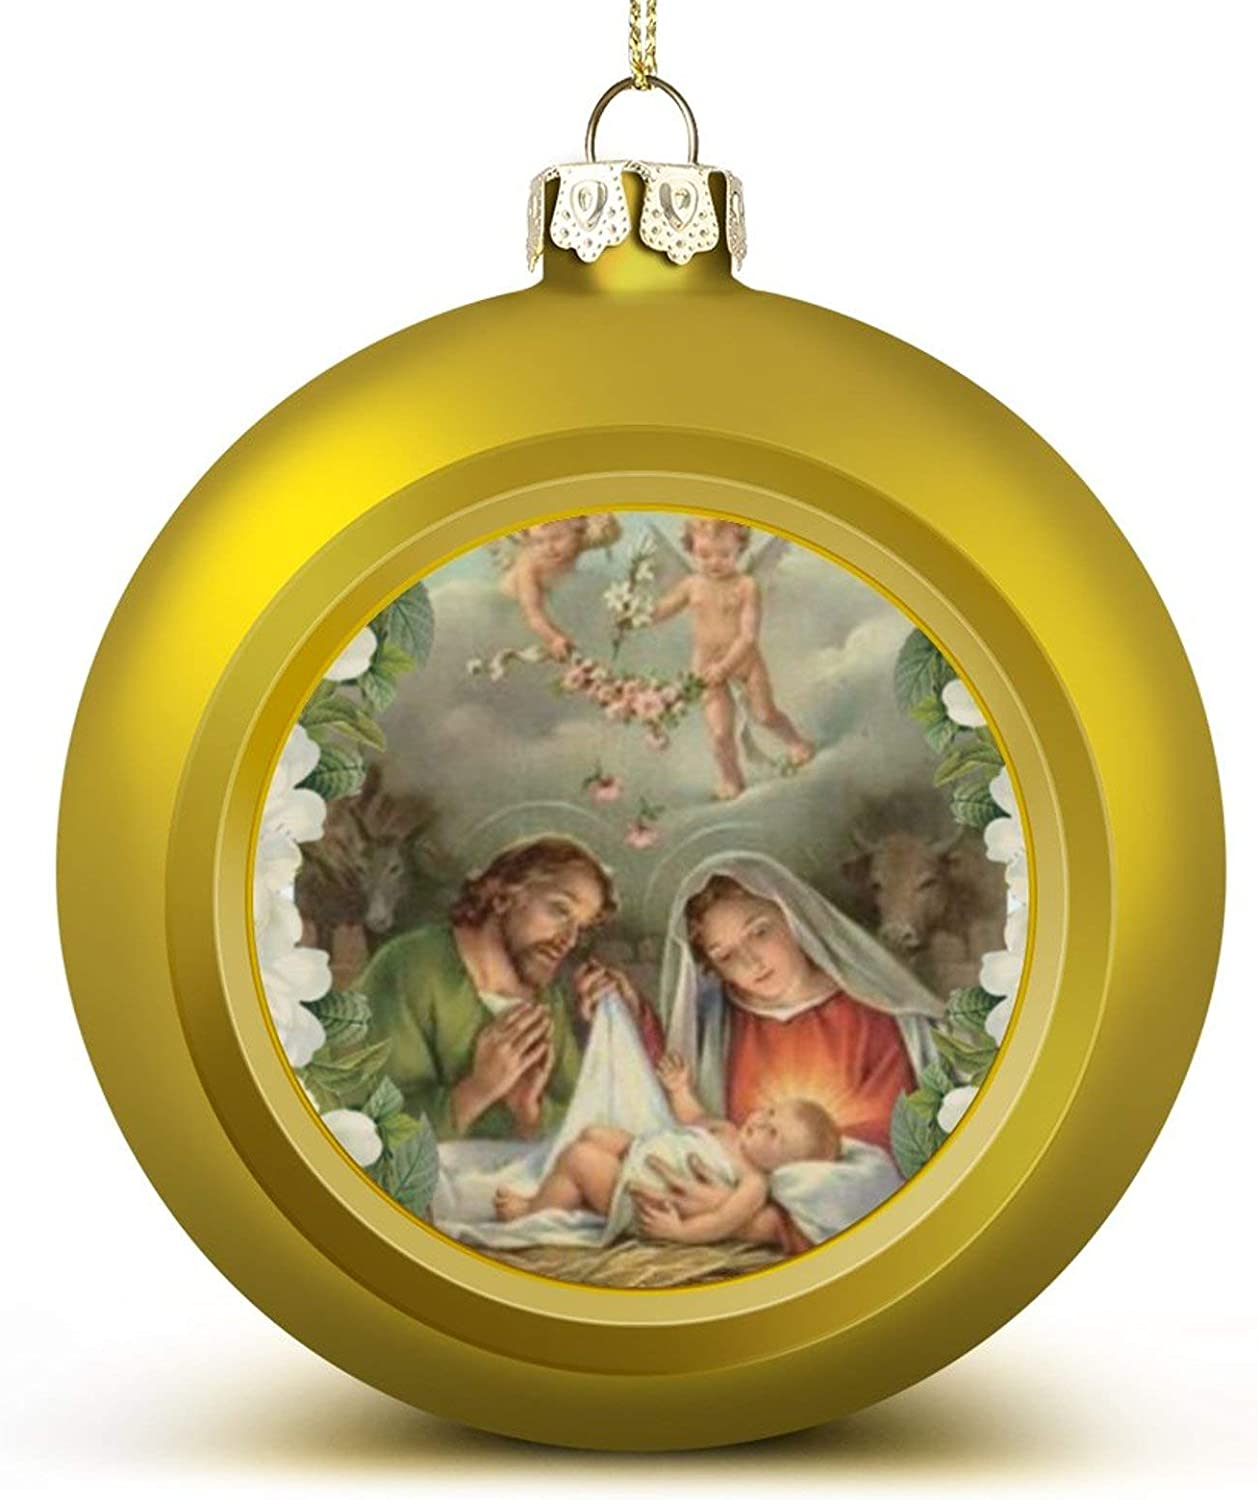 Amazon Com Christmas Ball Ornament Christmas Roses Baby Jesus St Joseph Mary Angel Xmas Tree Decorations Holiday Hanging Balls Home Kitchen